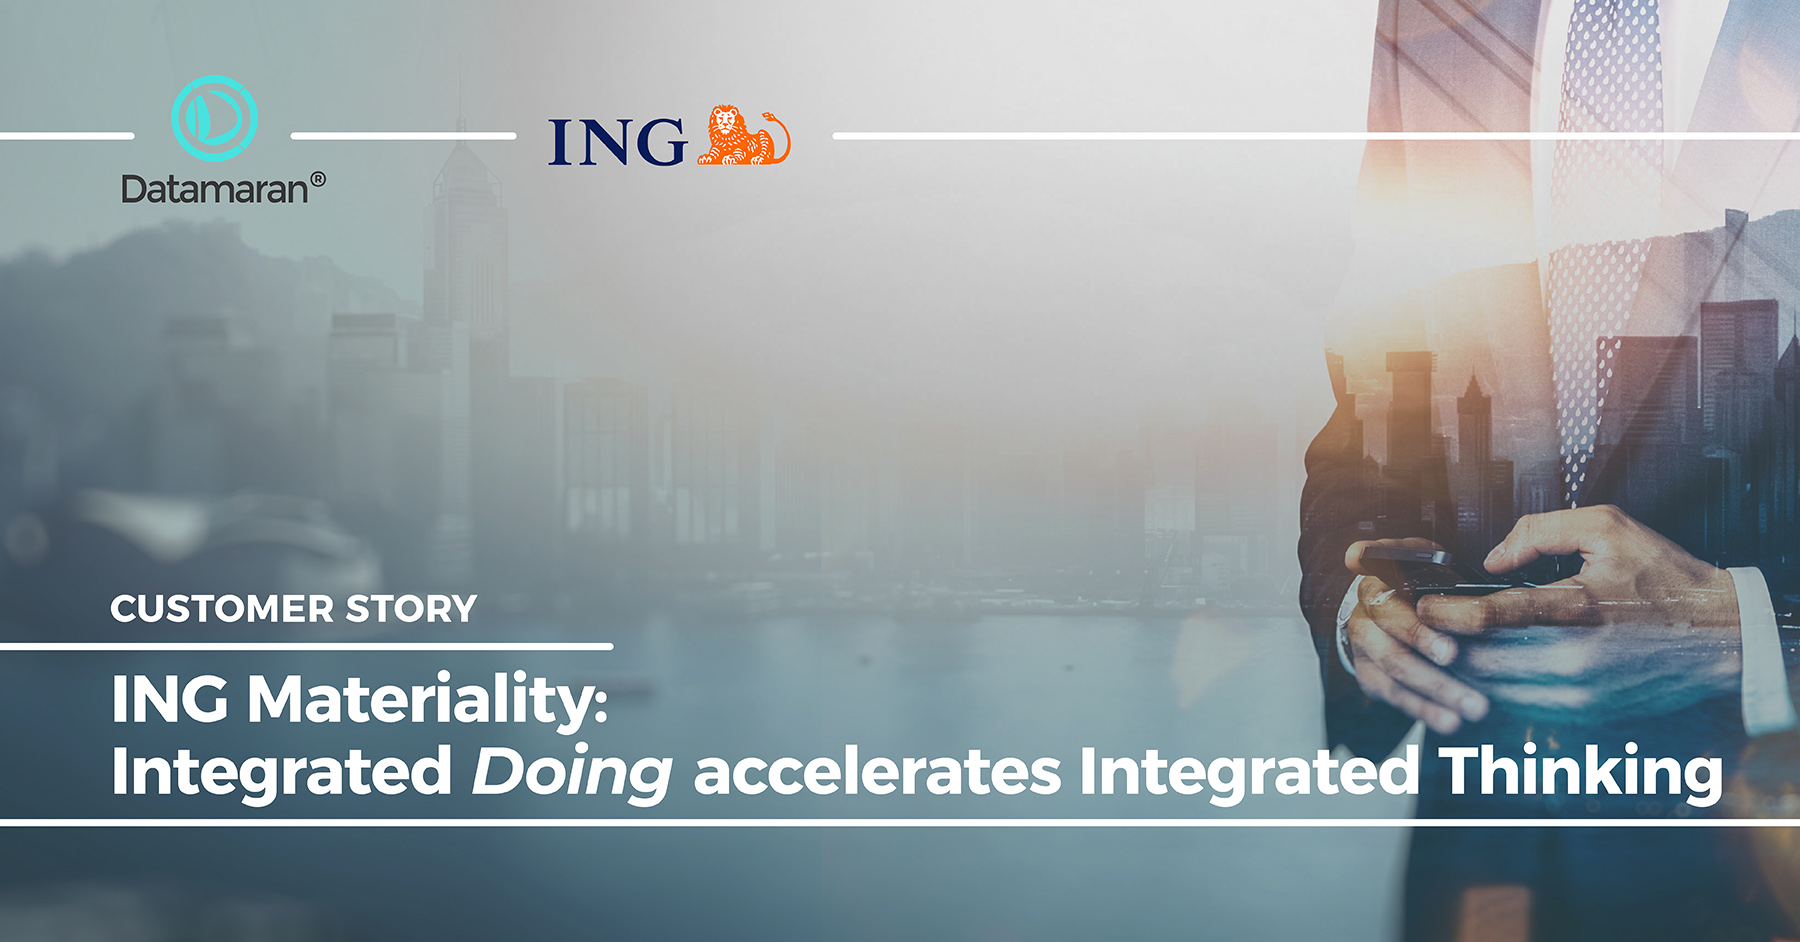 ING Materiality: Integrated Doing Accelerates Integrated Thinking